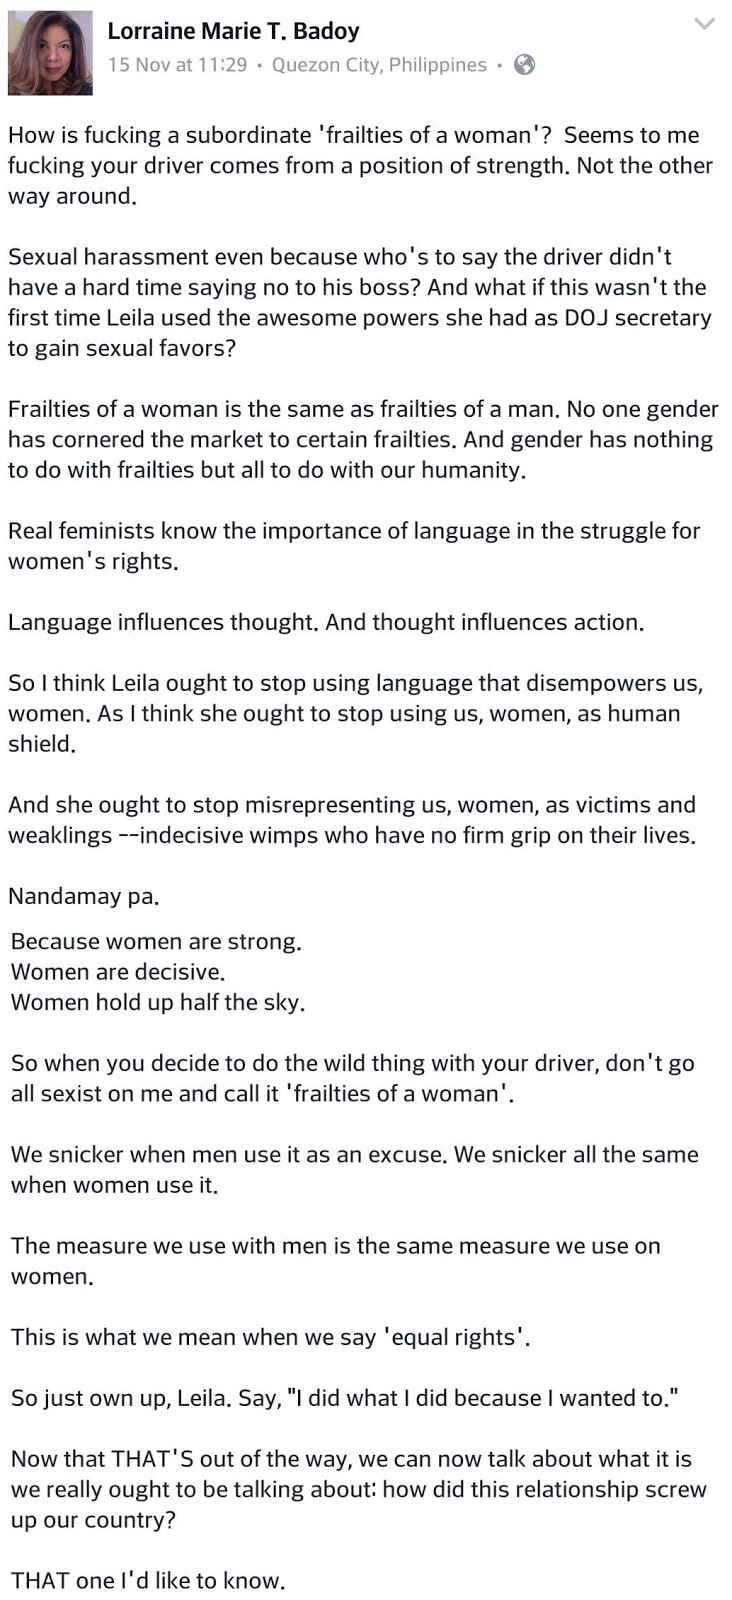 "Doctor and human rights advocate: Women are strong, De Lima ""nandamay pa"""